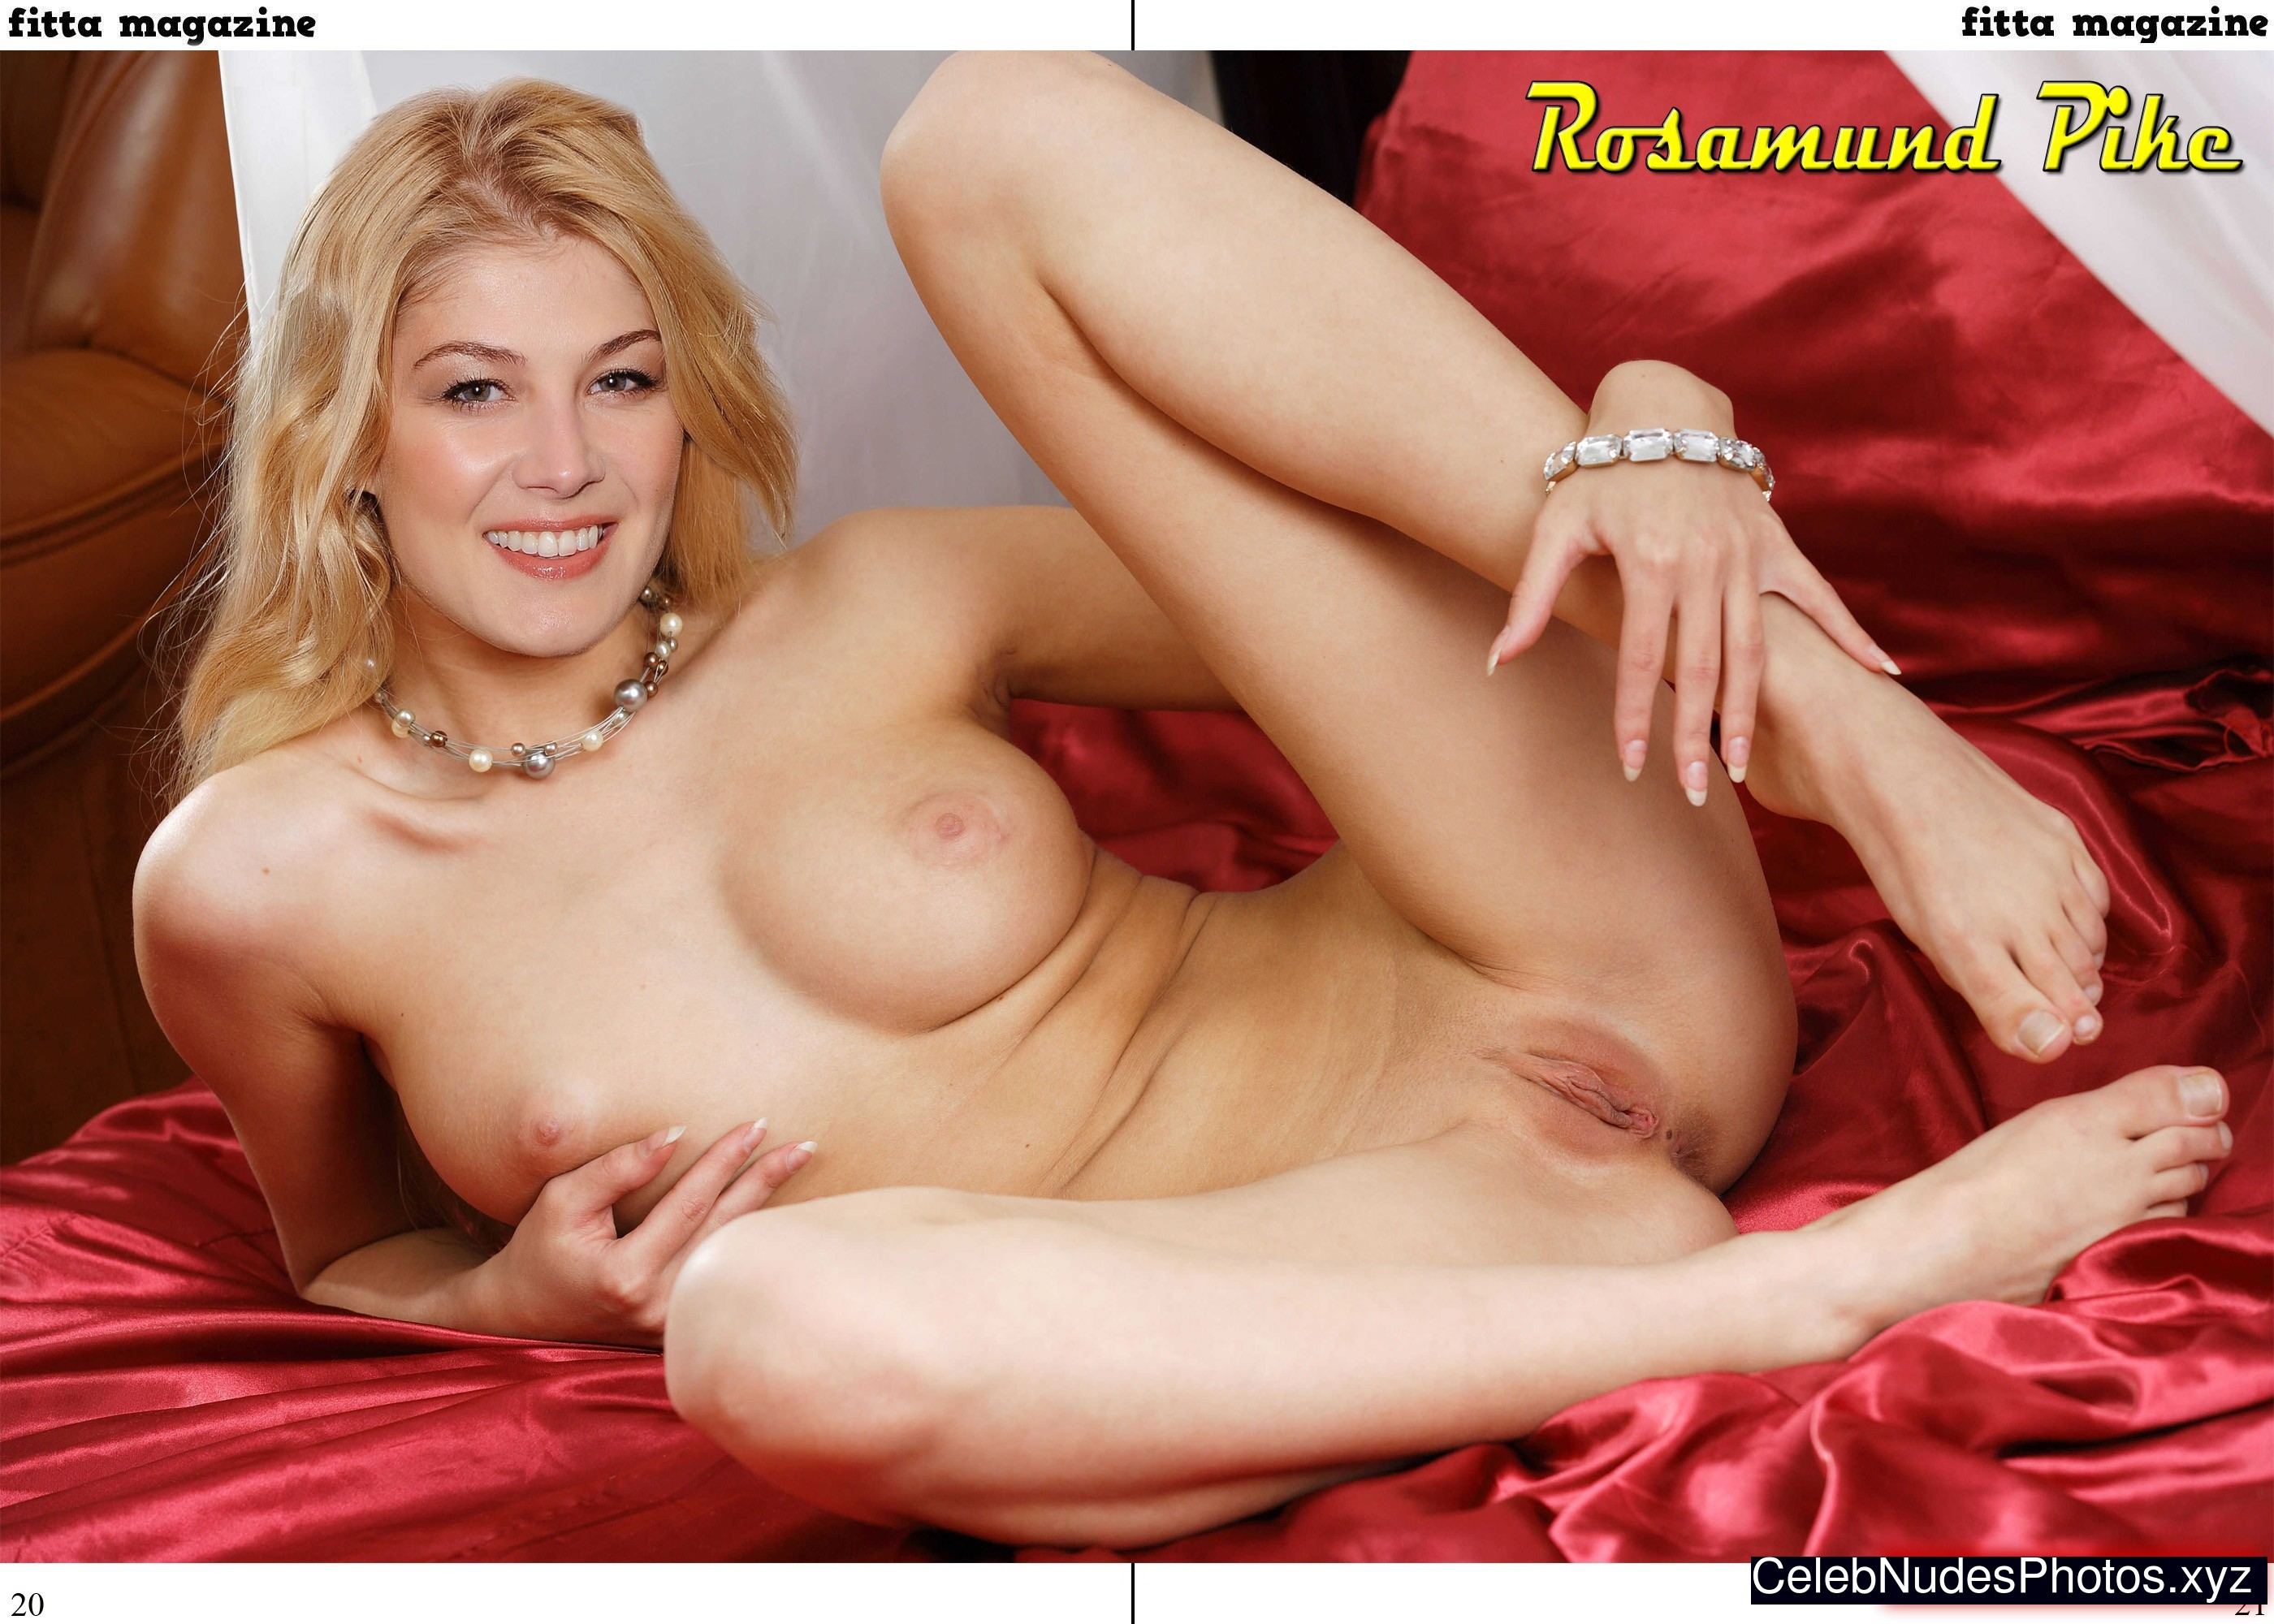 Cecilia Galliano Naked Top celebrities naked galleries - page 6 of 16 - celeb nudes photos